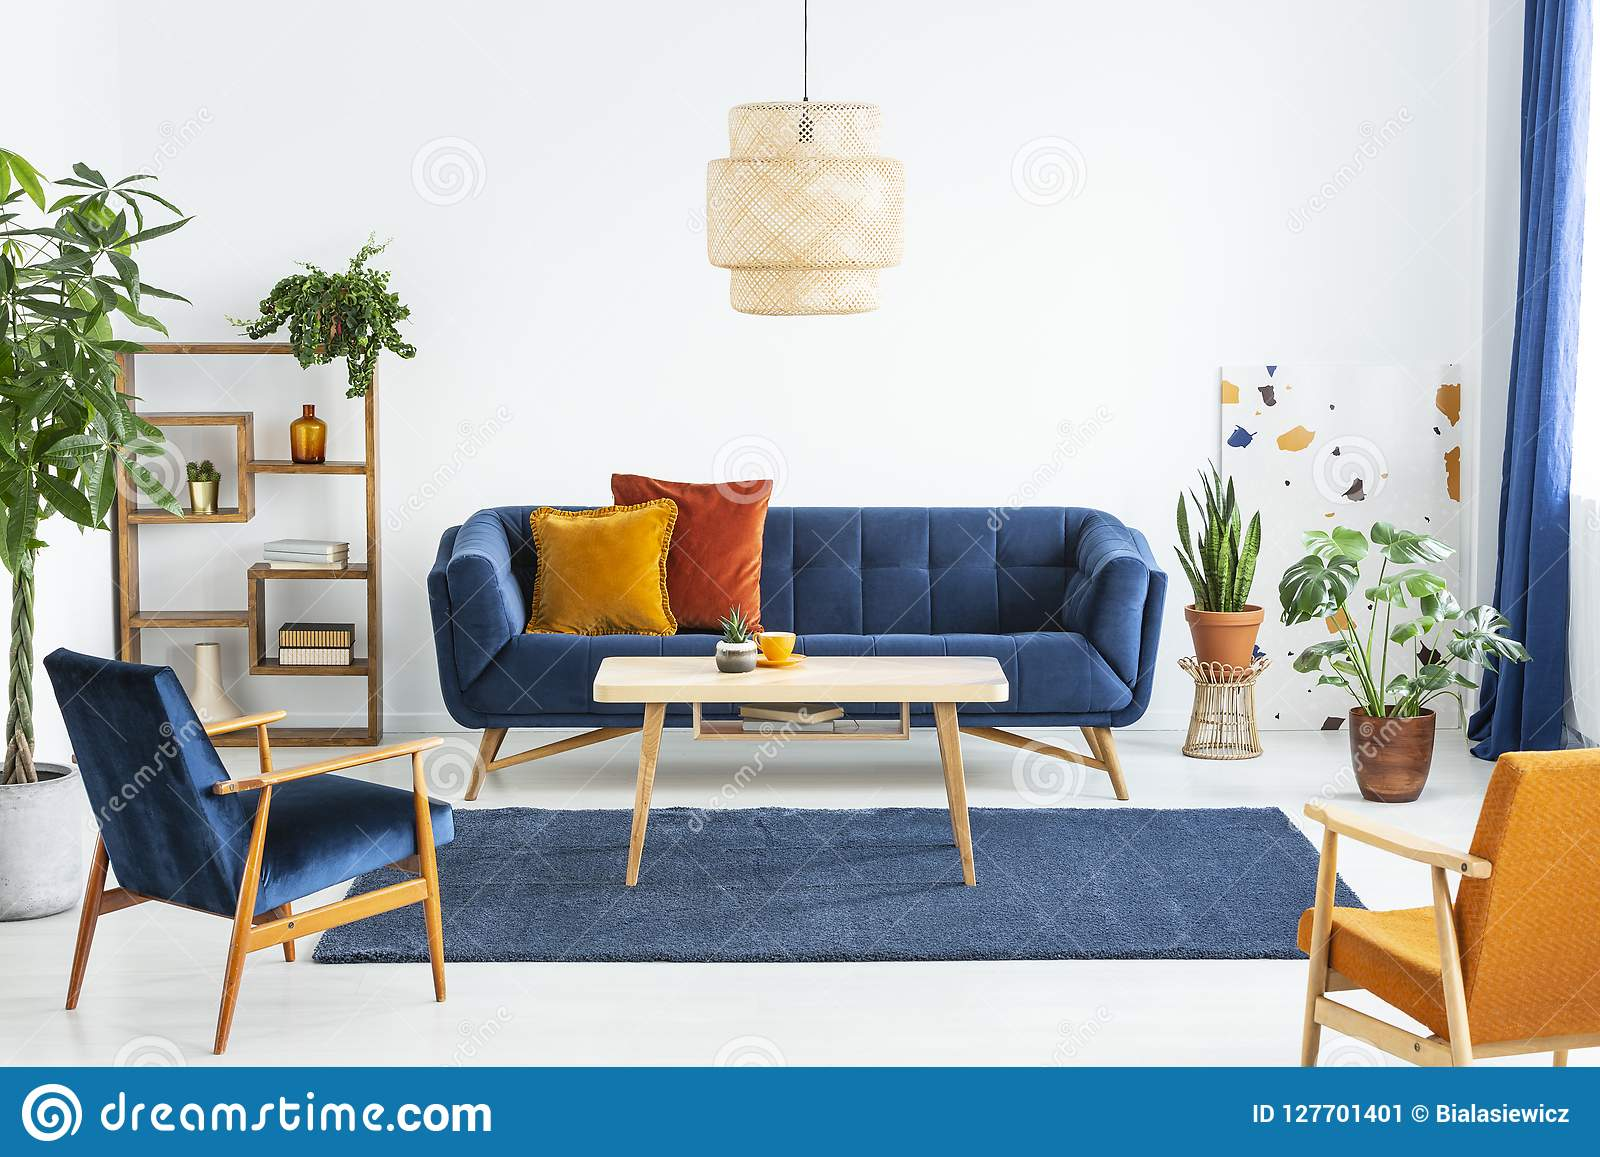 Retro Armchairs With Wooden Frame And Colorful Pillows On A ...